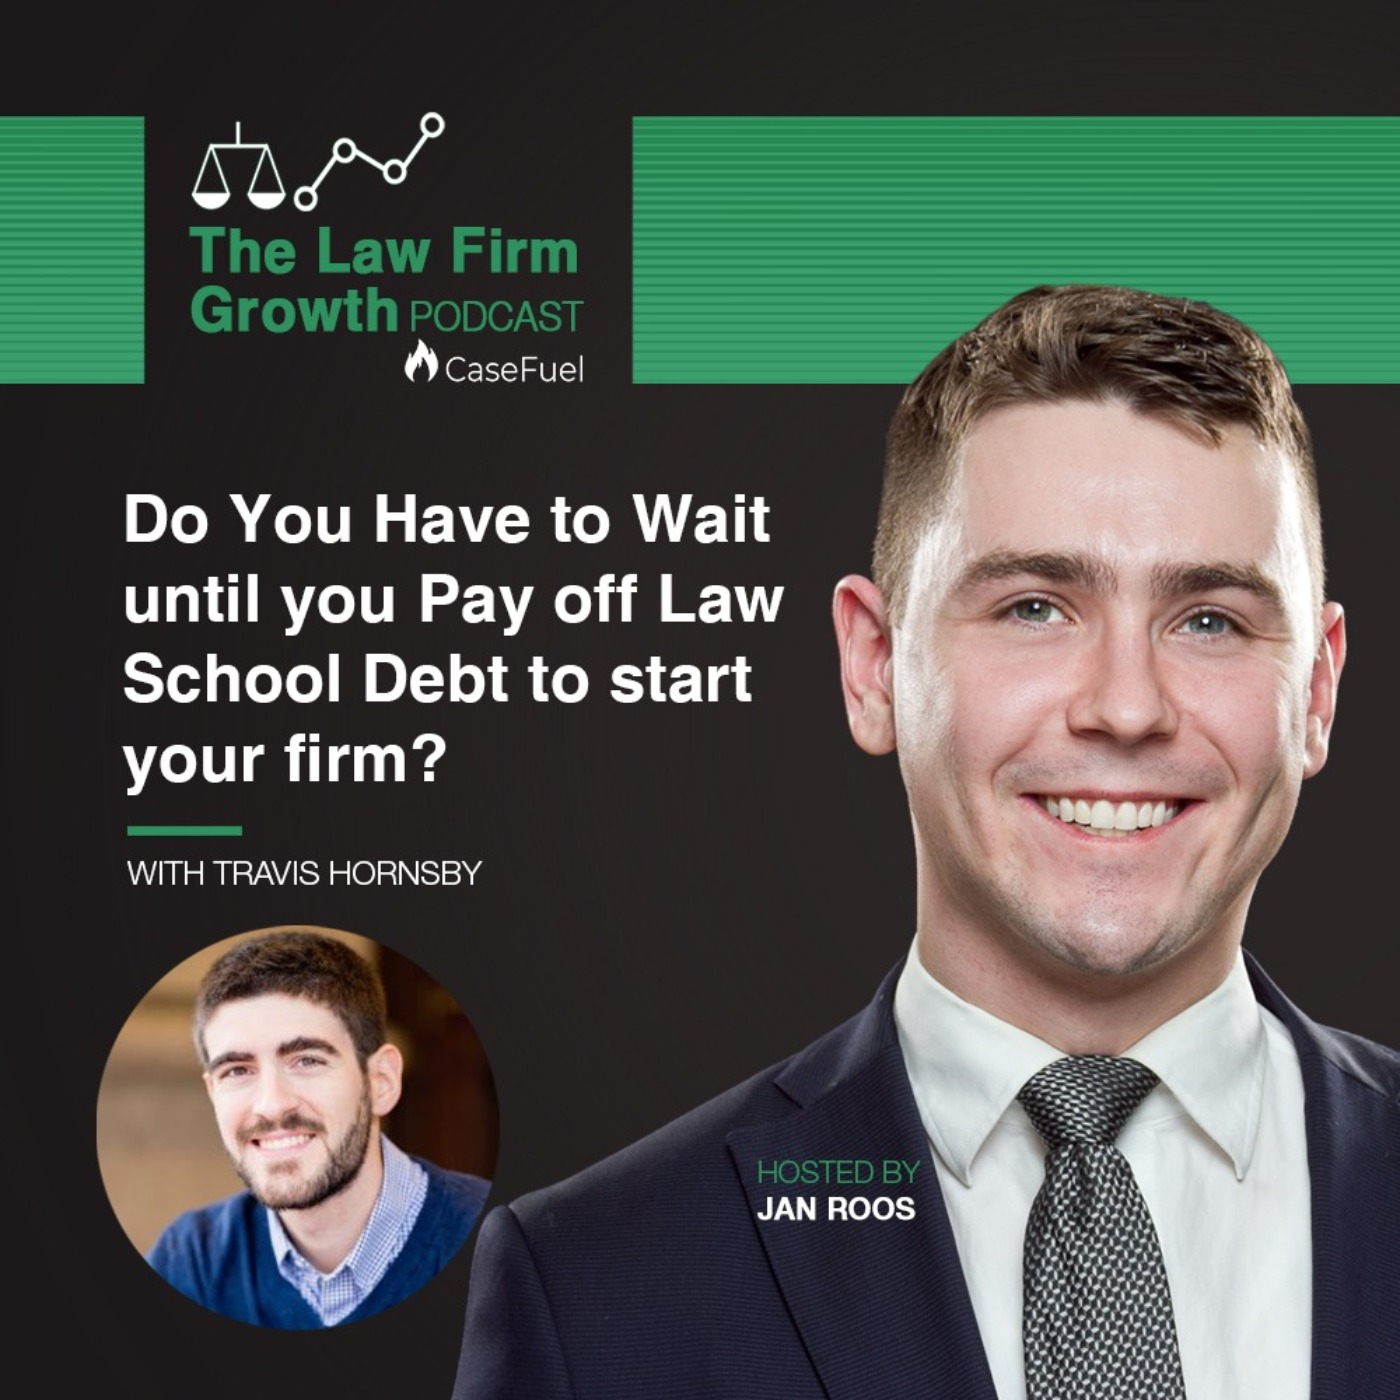 Do You Have to Wait Until You Pay Off Law School Debt to Start Your Firm? With Travis Hornsby